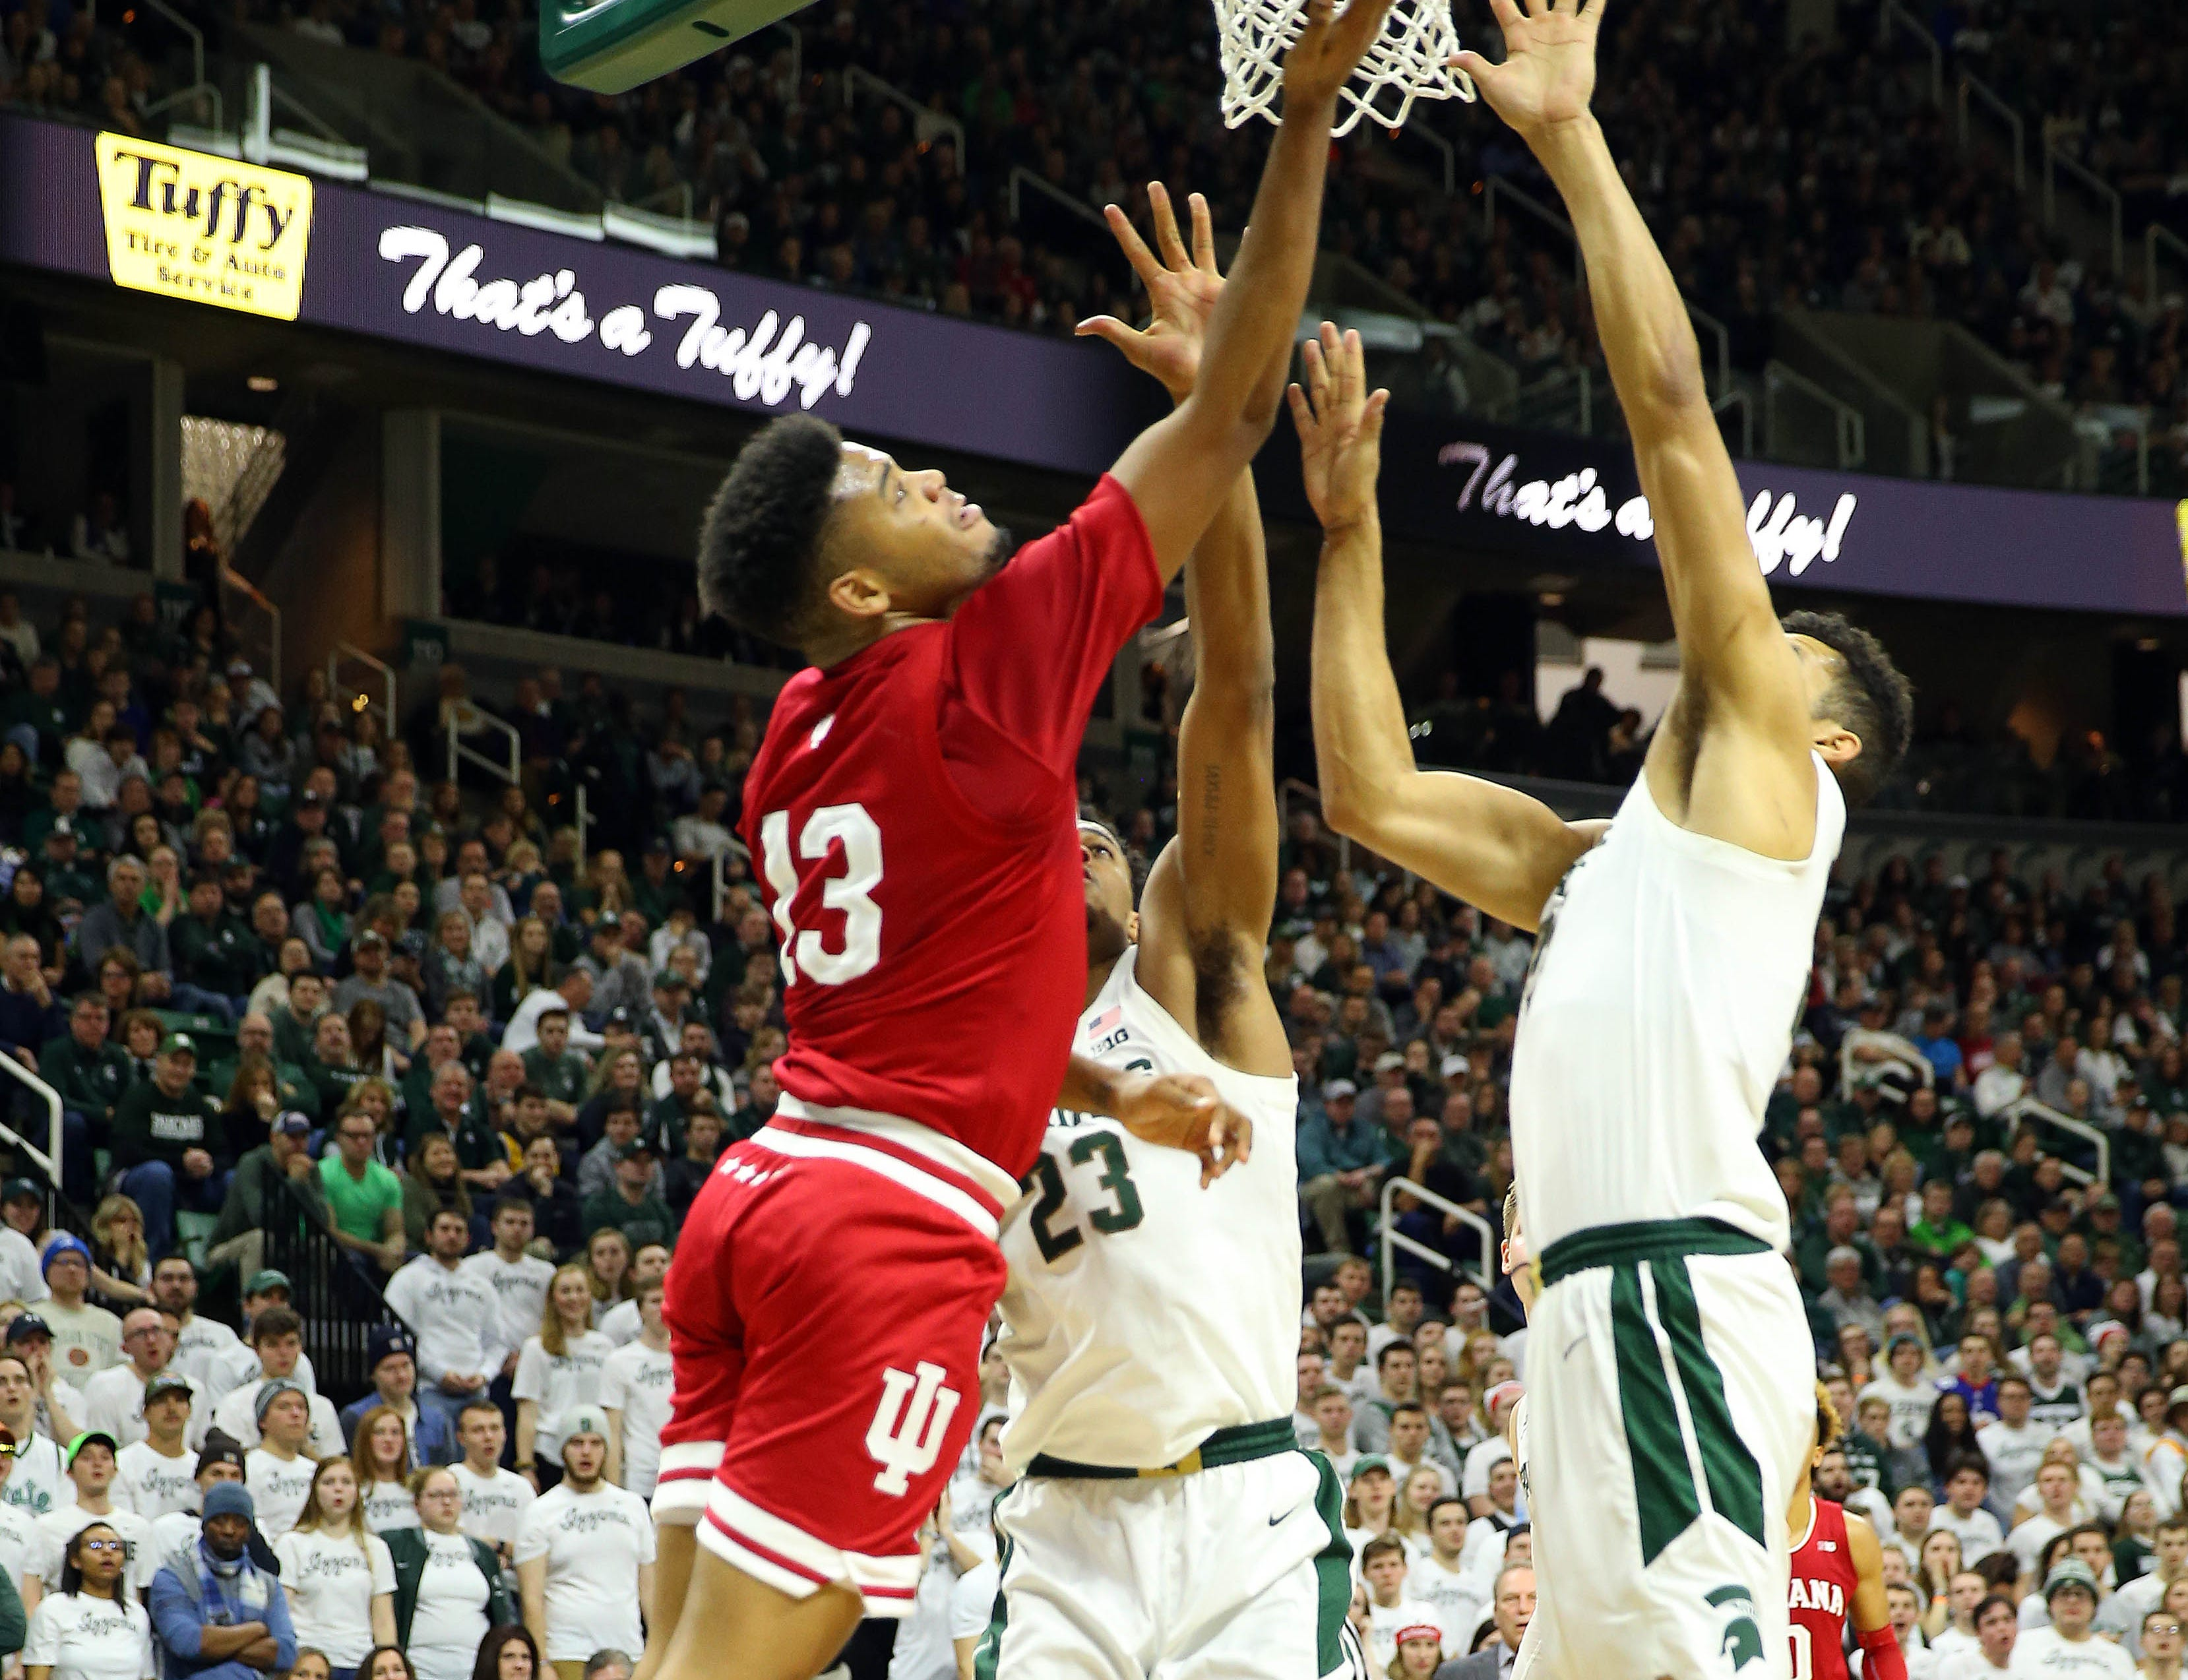 Indiana Hoosiers forward Juwan Morgan has his shot blocked by Michigan State Spartans forward Kenny Goins (25) during the first half  at the Breslin Center.